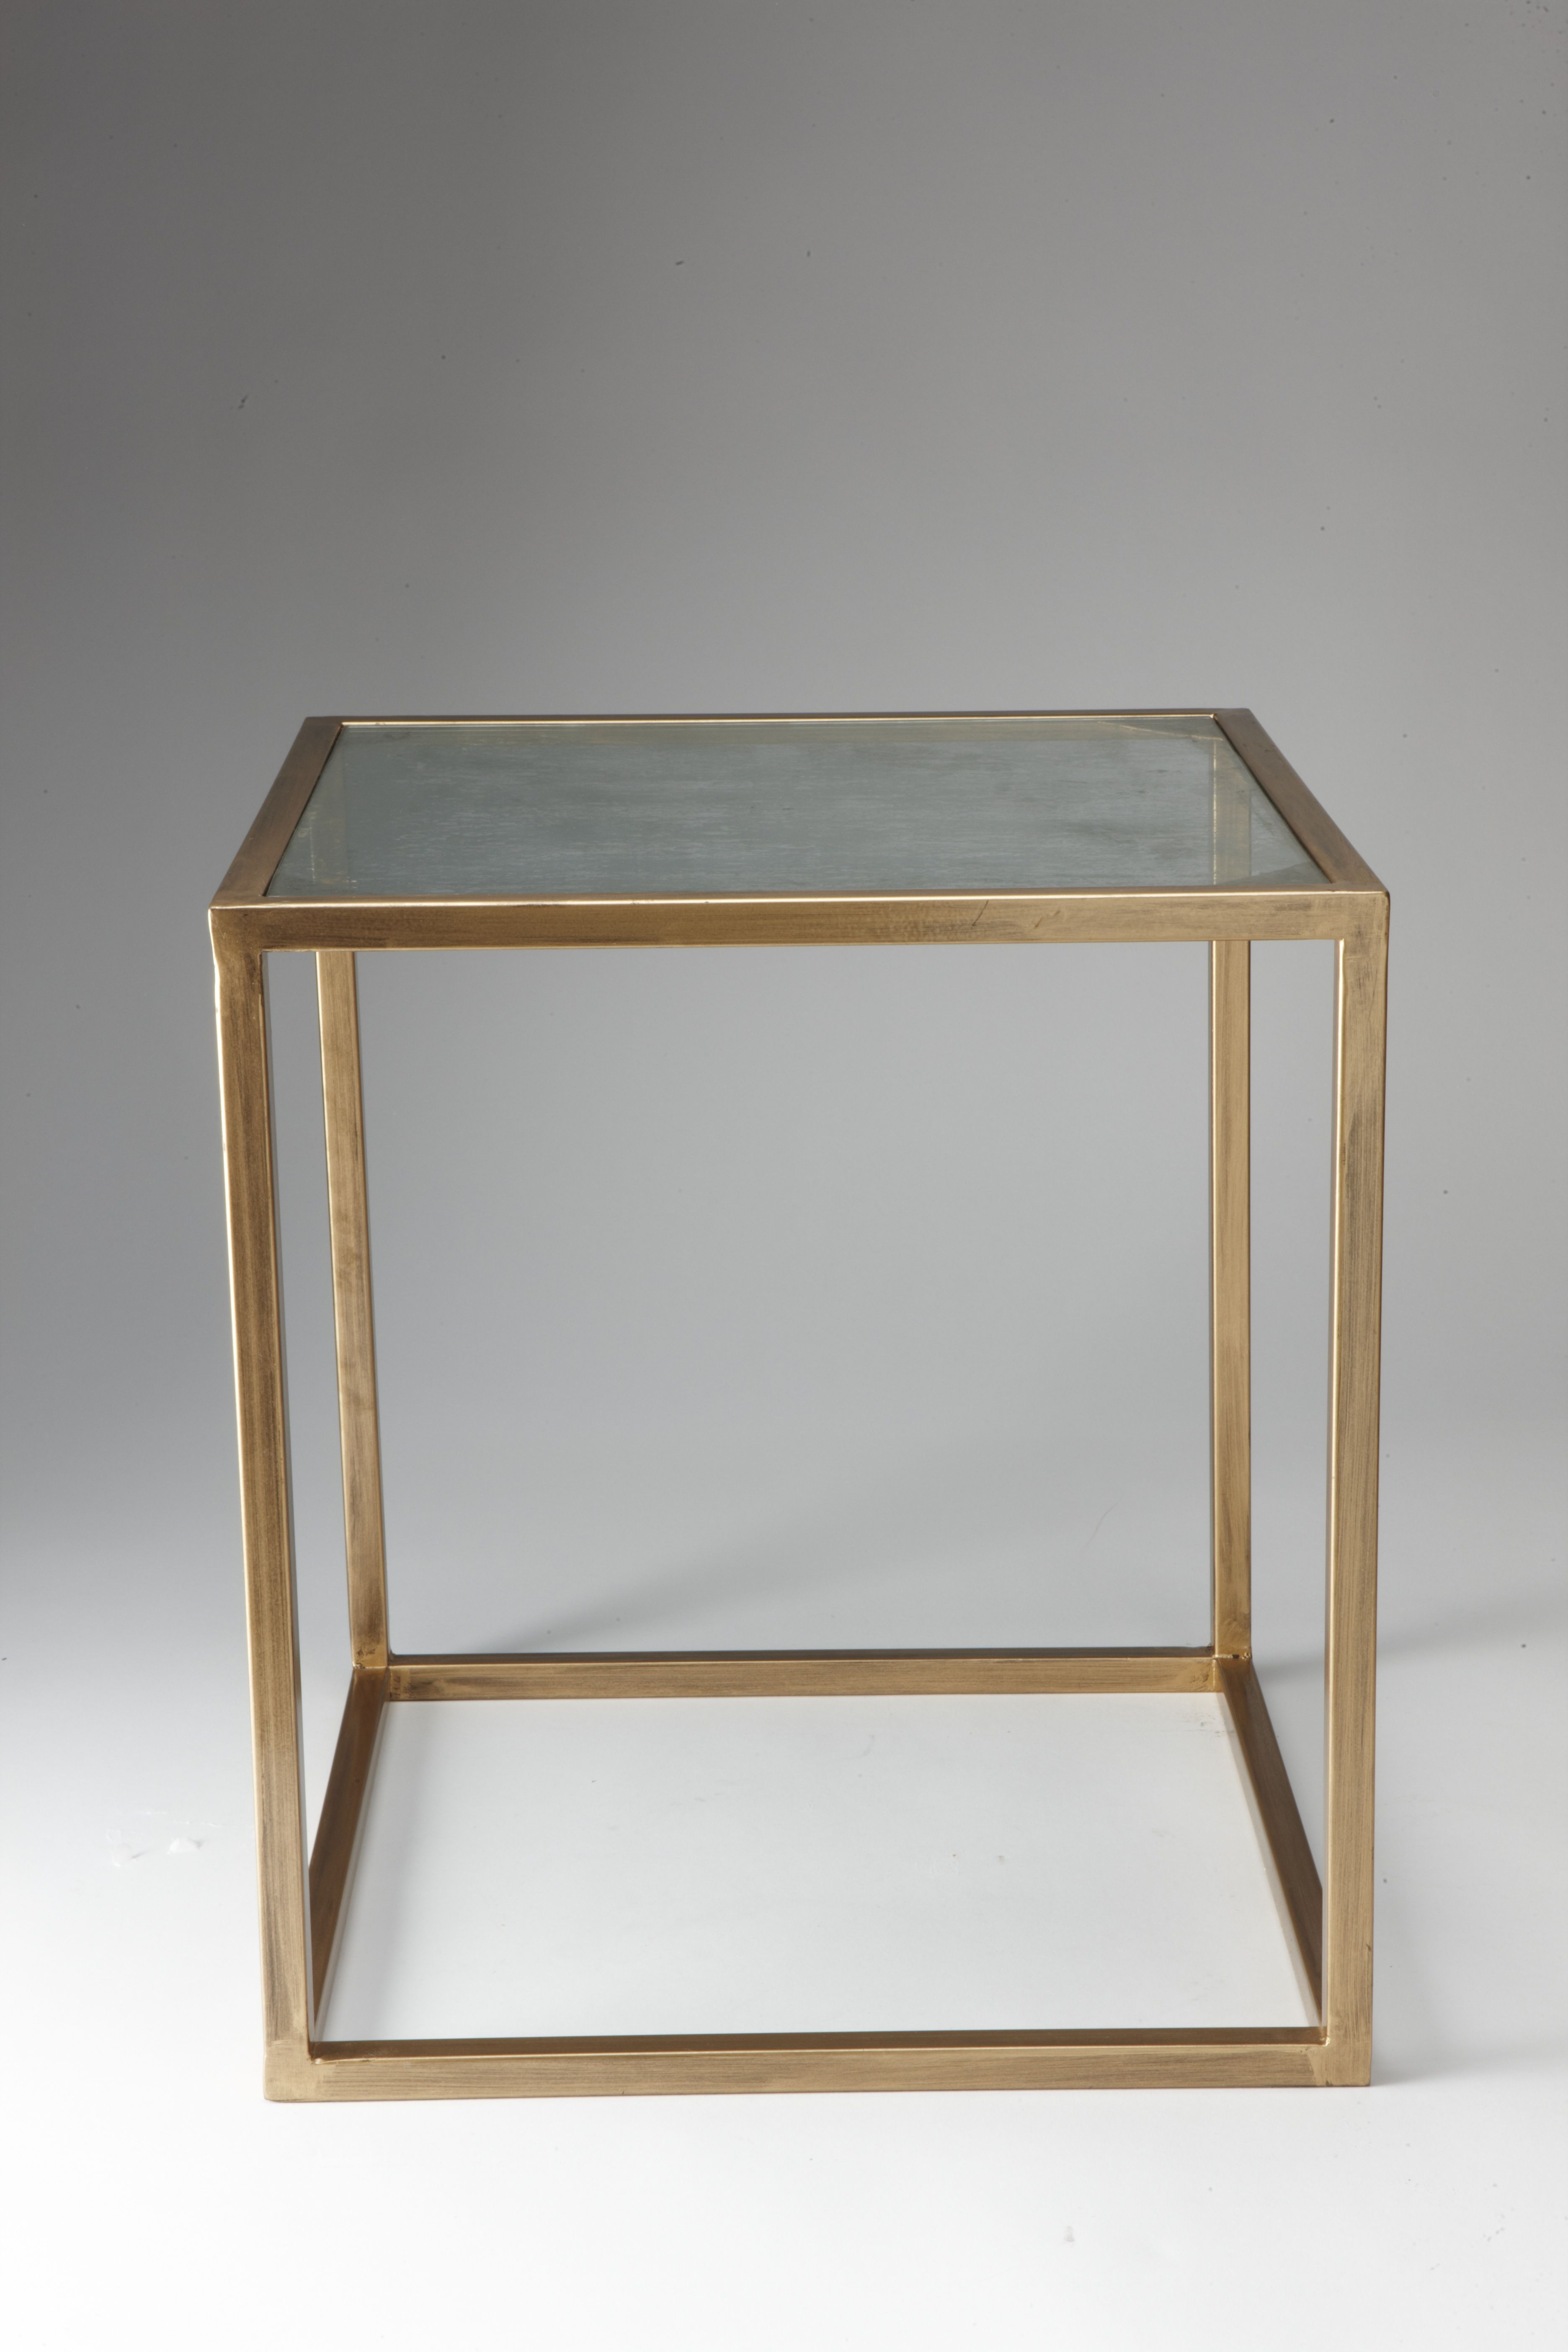 nate berkus accent table gold and antiqued glass target threshold vintage white finish rectangle coffee leick laurent ikea hallway storage small side wheels patio tiles round